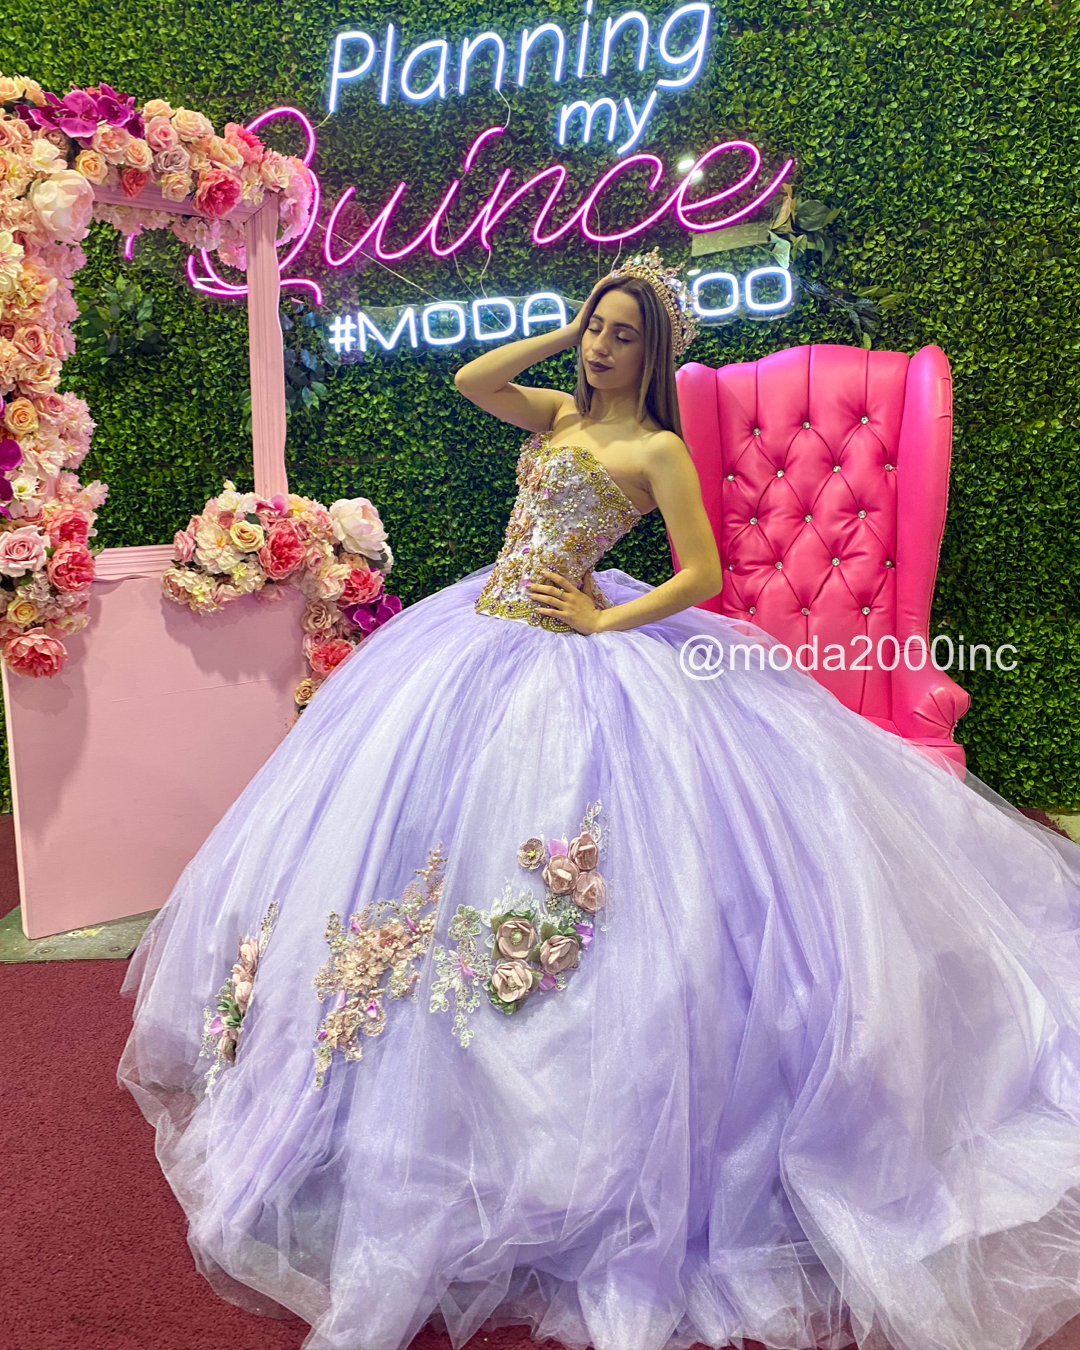 Unique Quince Lilac Dress With Eye Catching Flowers Quince Dresses Quinceanera Dresses Lilac Dress [ 1350 x 1080 Pixel ]